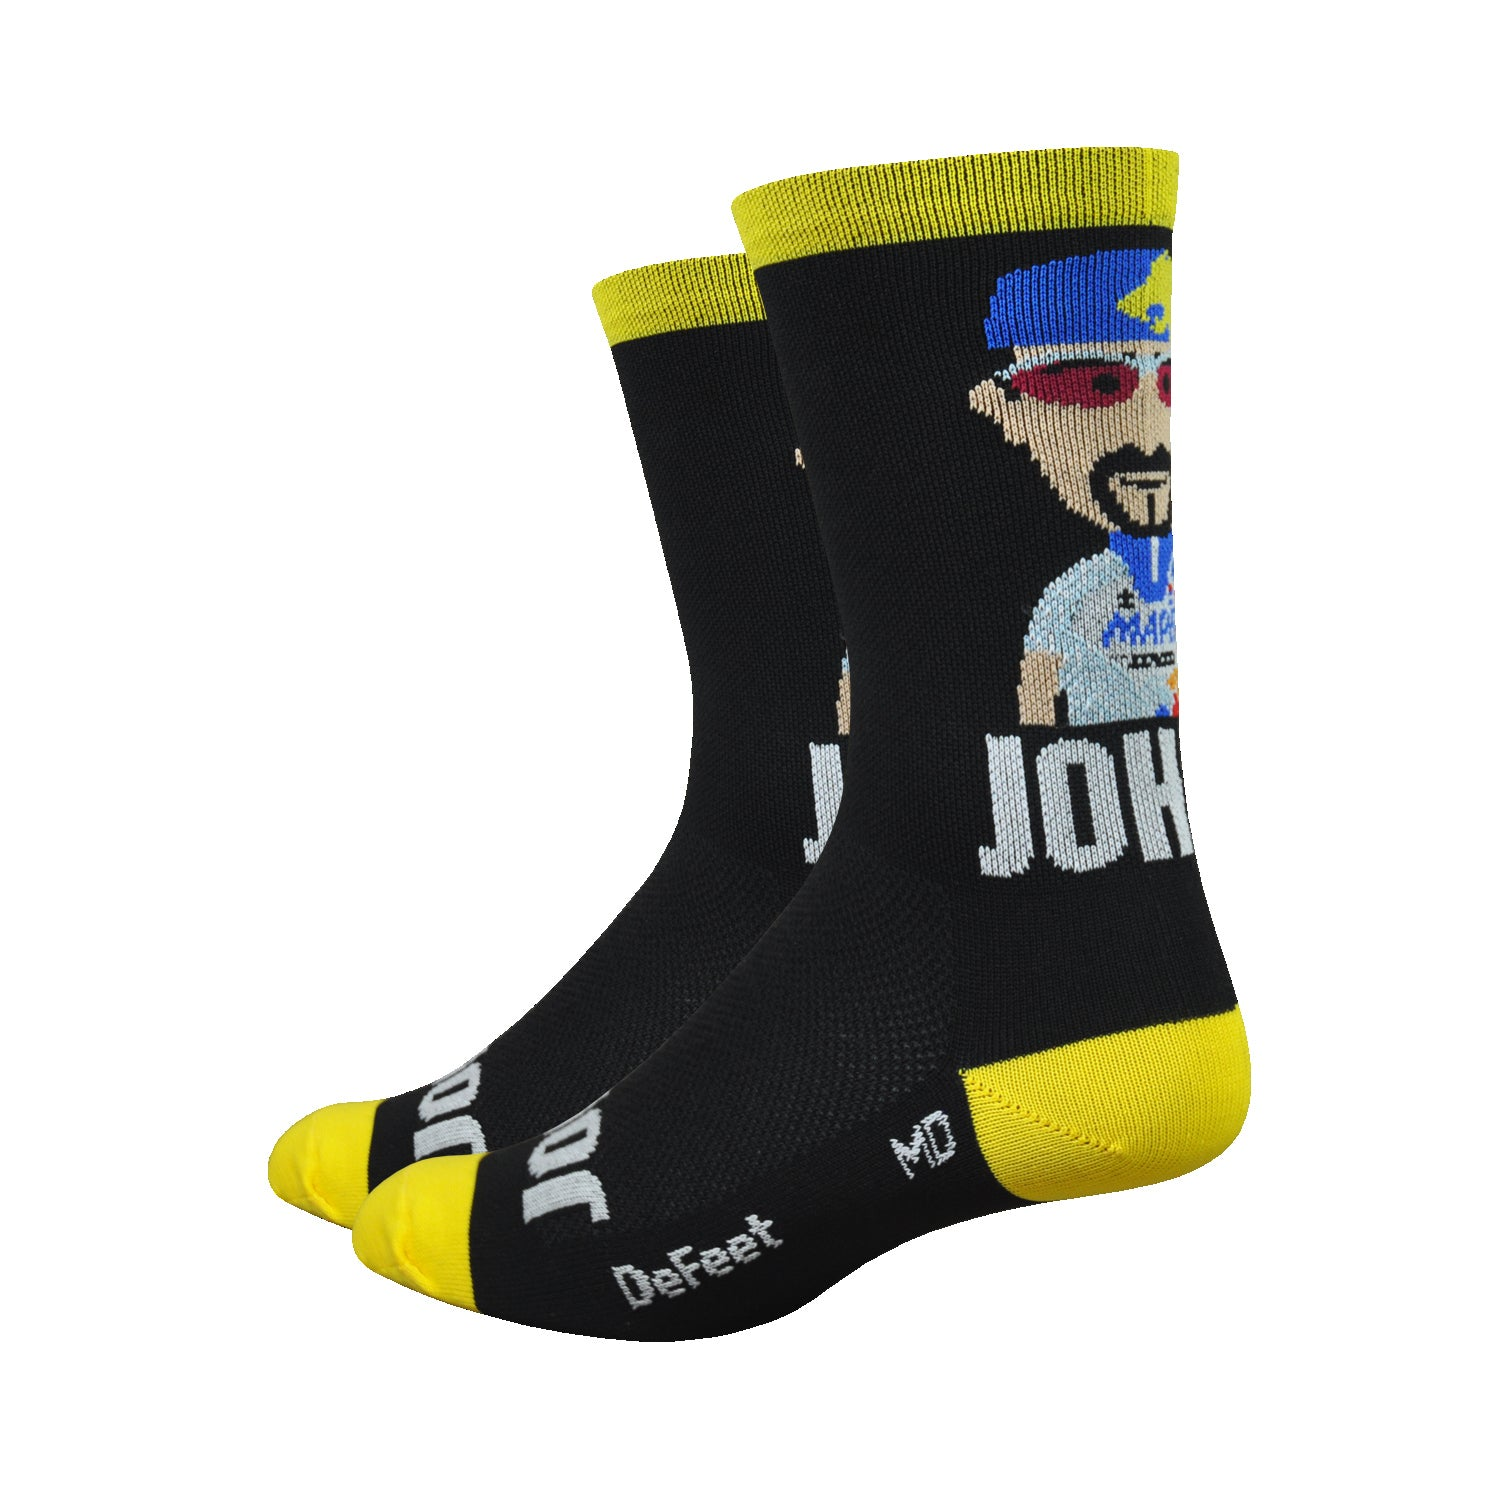 "DeFeet Aireator 6"" Rich Mitch Legends Johan Museeuw"